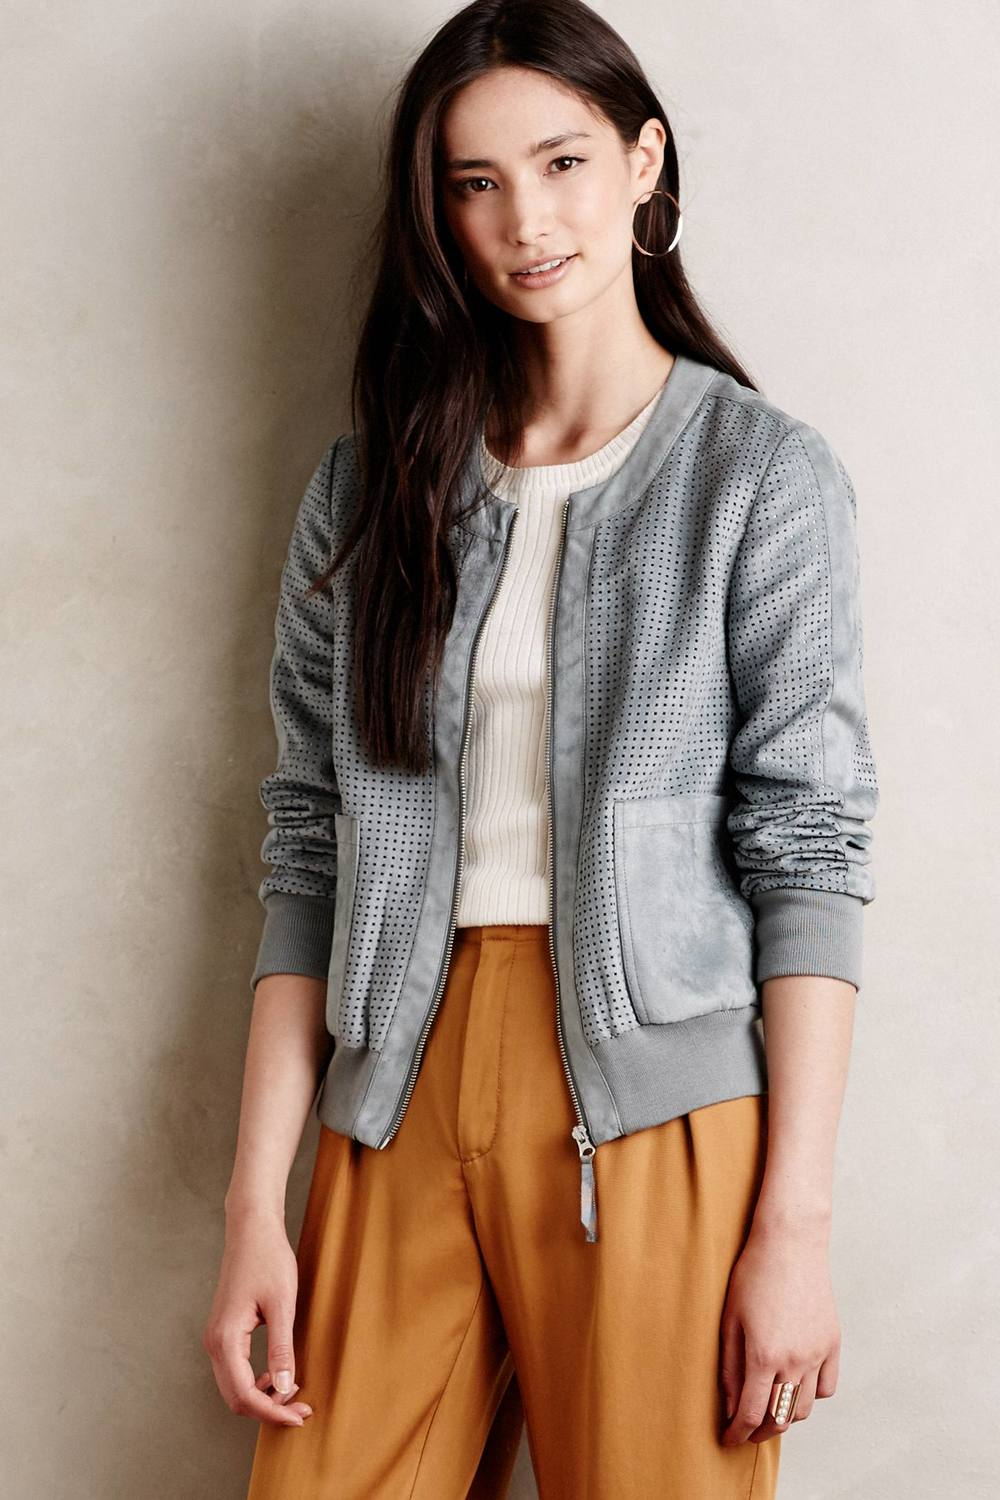 Vegan Suede Bomber. Available in grey, cream. Anthropology. $188.